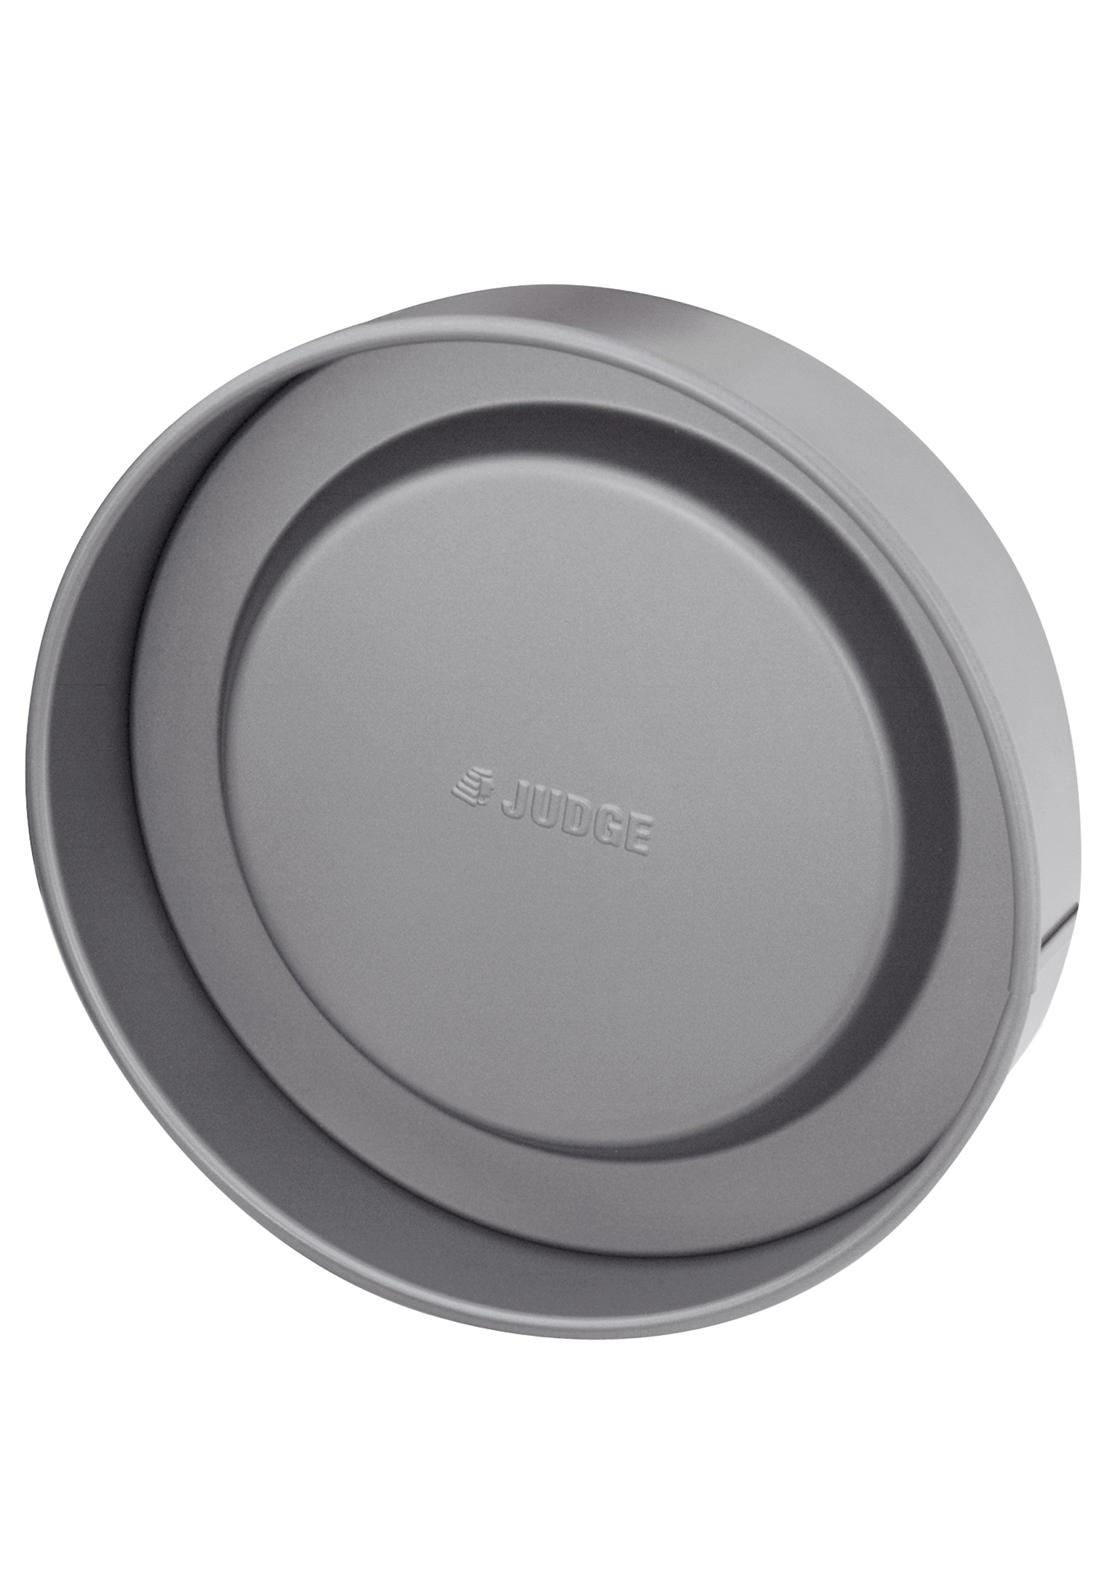 Judge Bakeware Round Sandwich Tin Loose Base